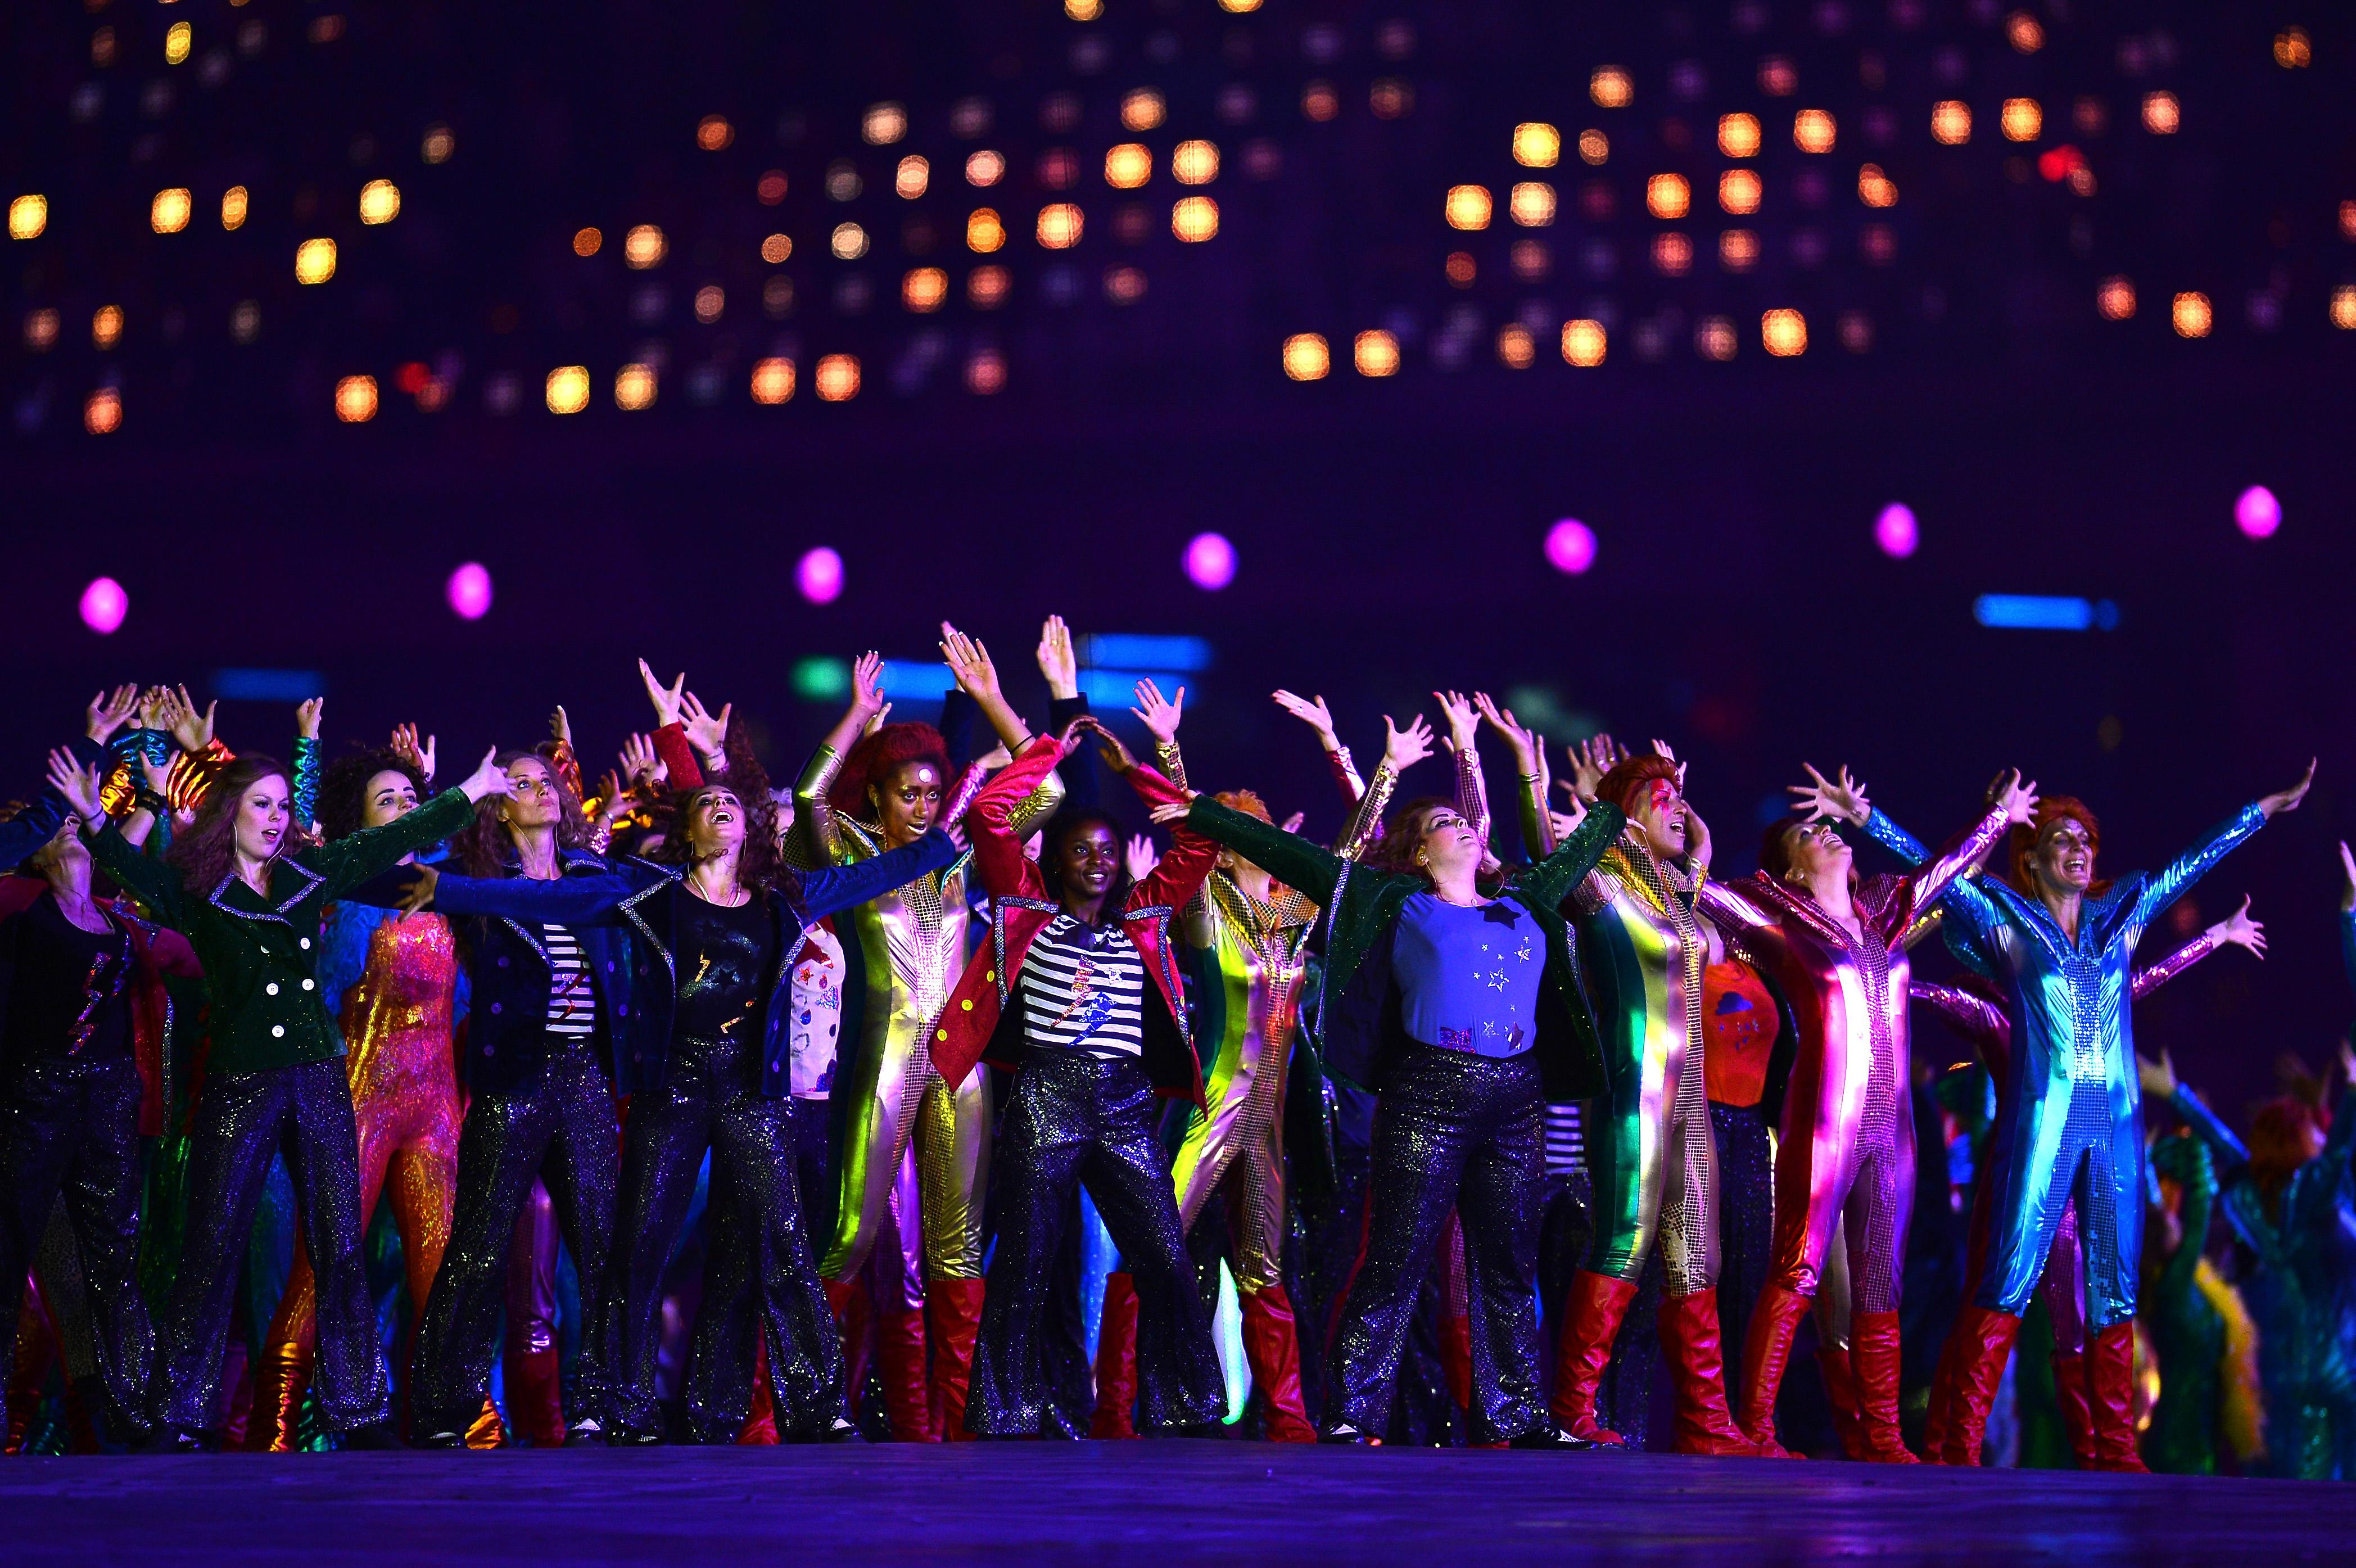 Dancing at the opening ceremony